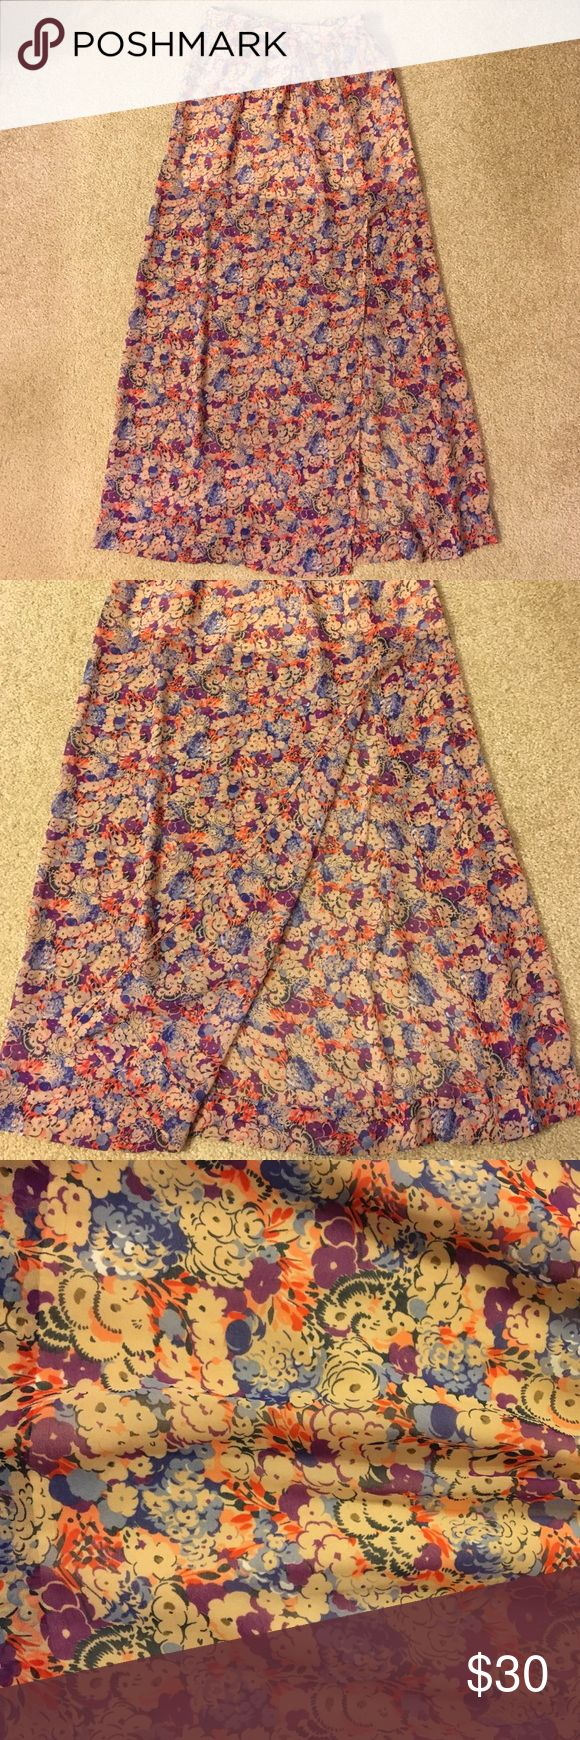 BCBGeneration skirt Floor-length floral skirt by BCBGeneration. Slit in the front goes all the way up the mid-thigh. Great condition. Last image is to show fit. BCBGeneration Skirts Maxi